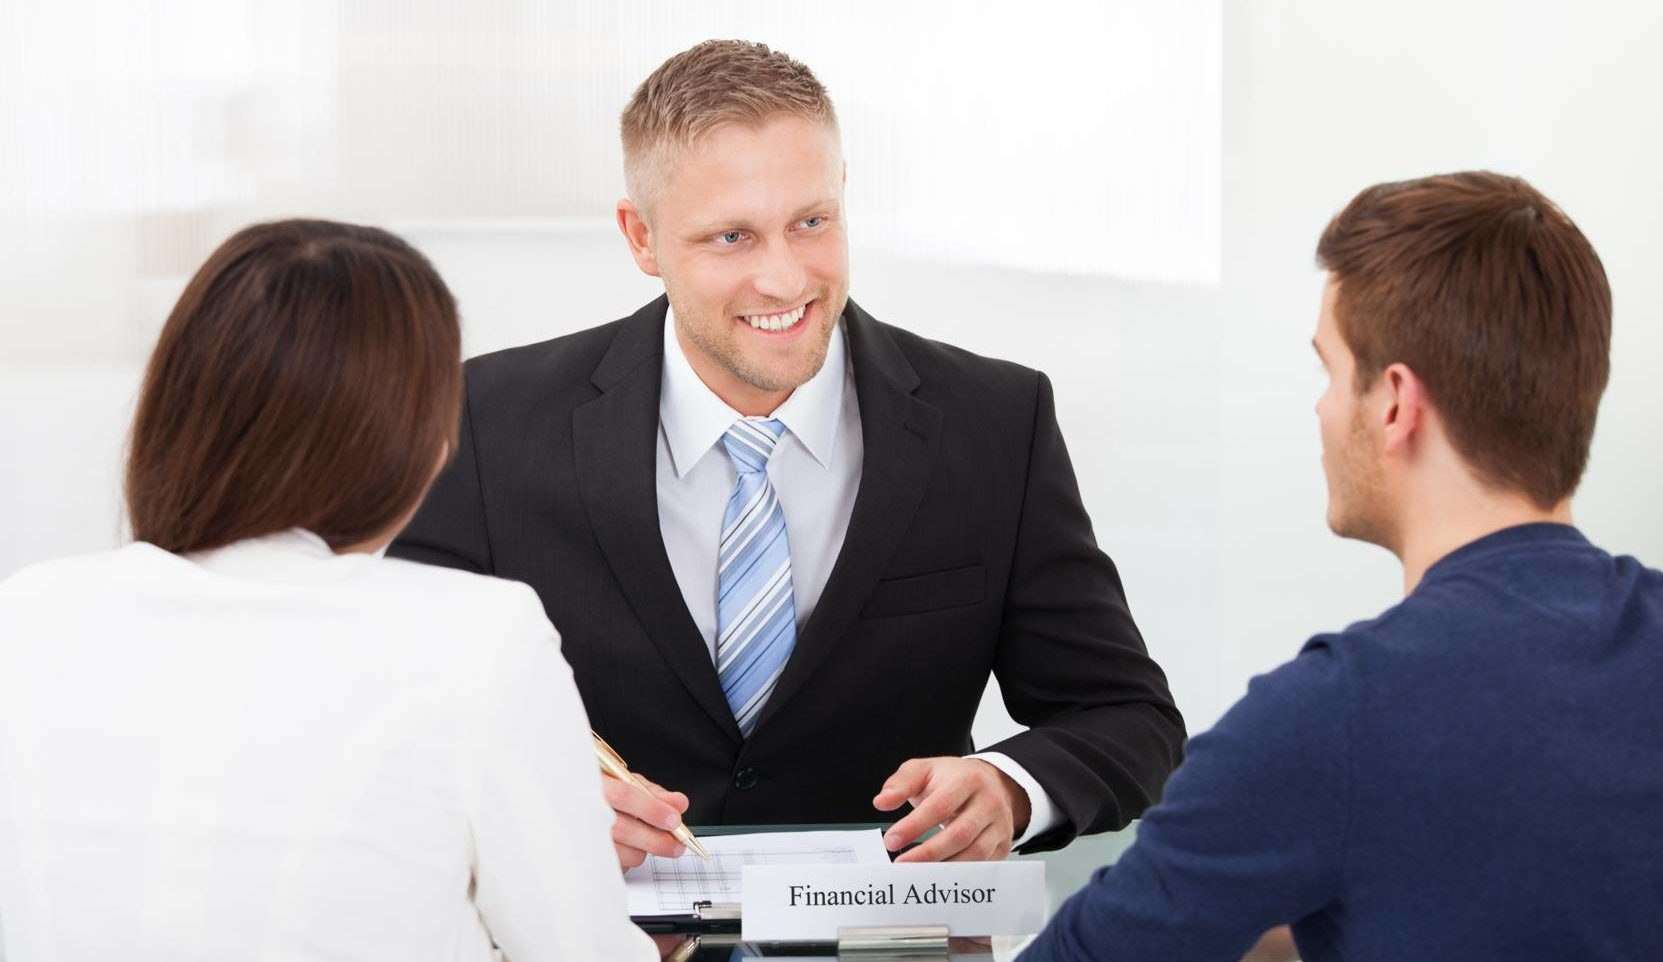 Solutions for Financial Services Firms and Advisors